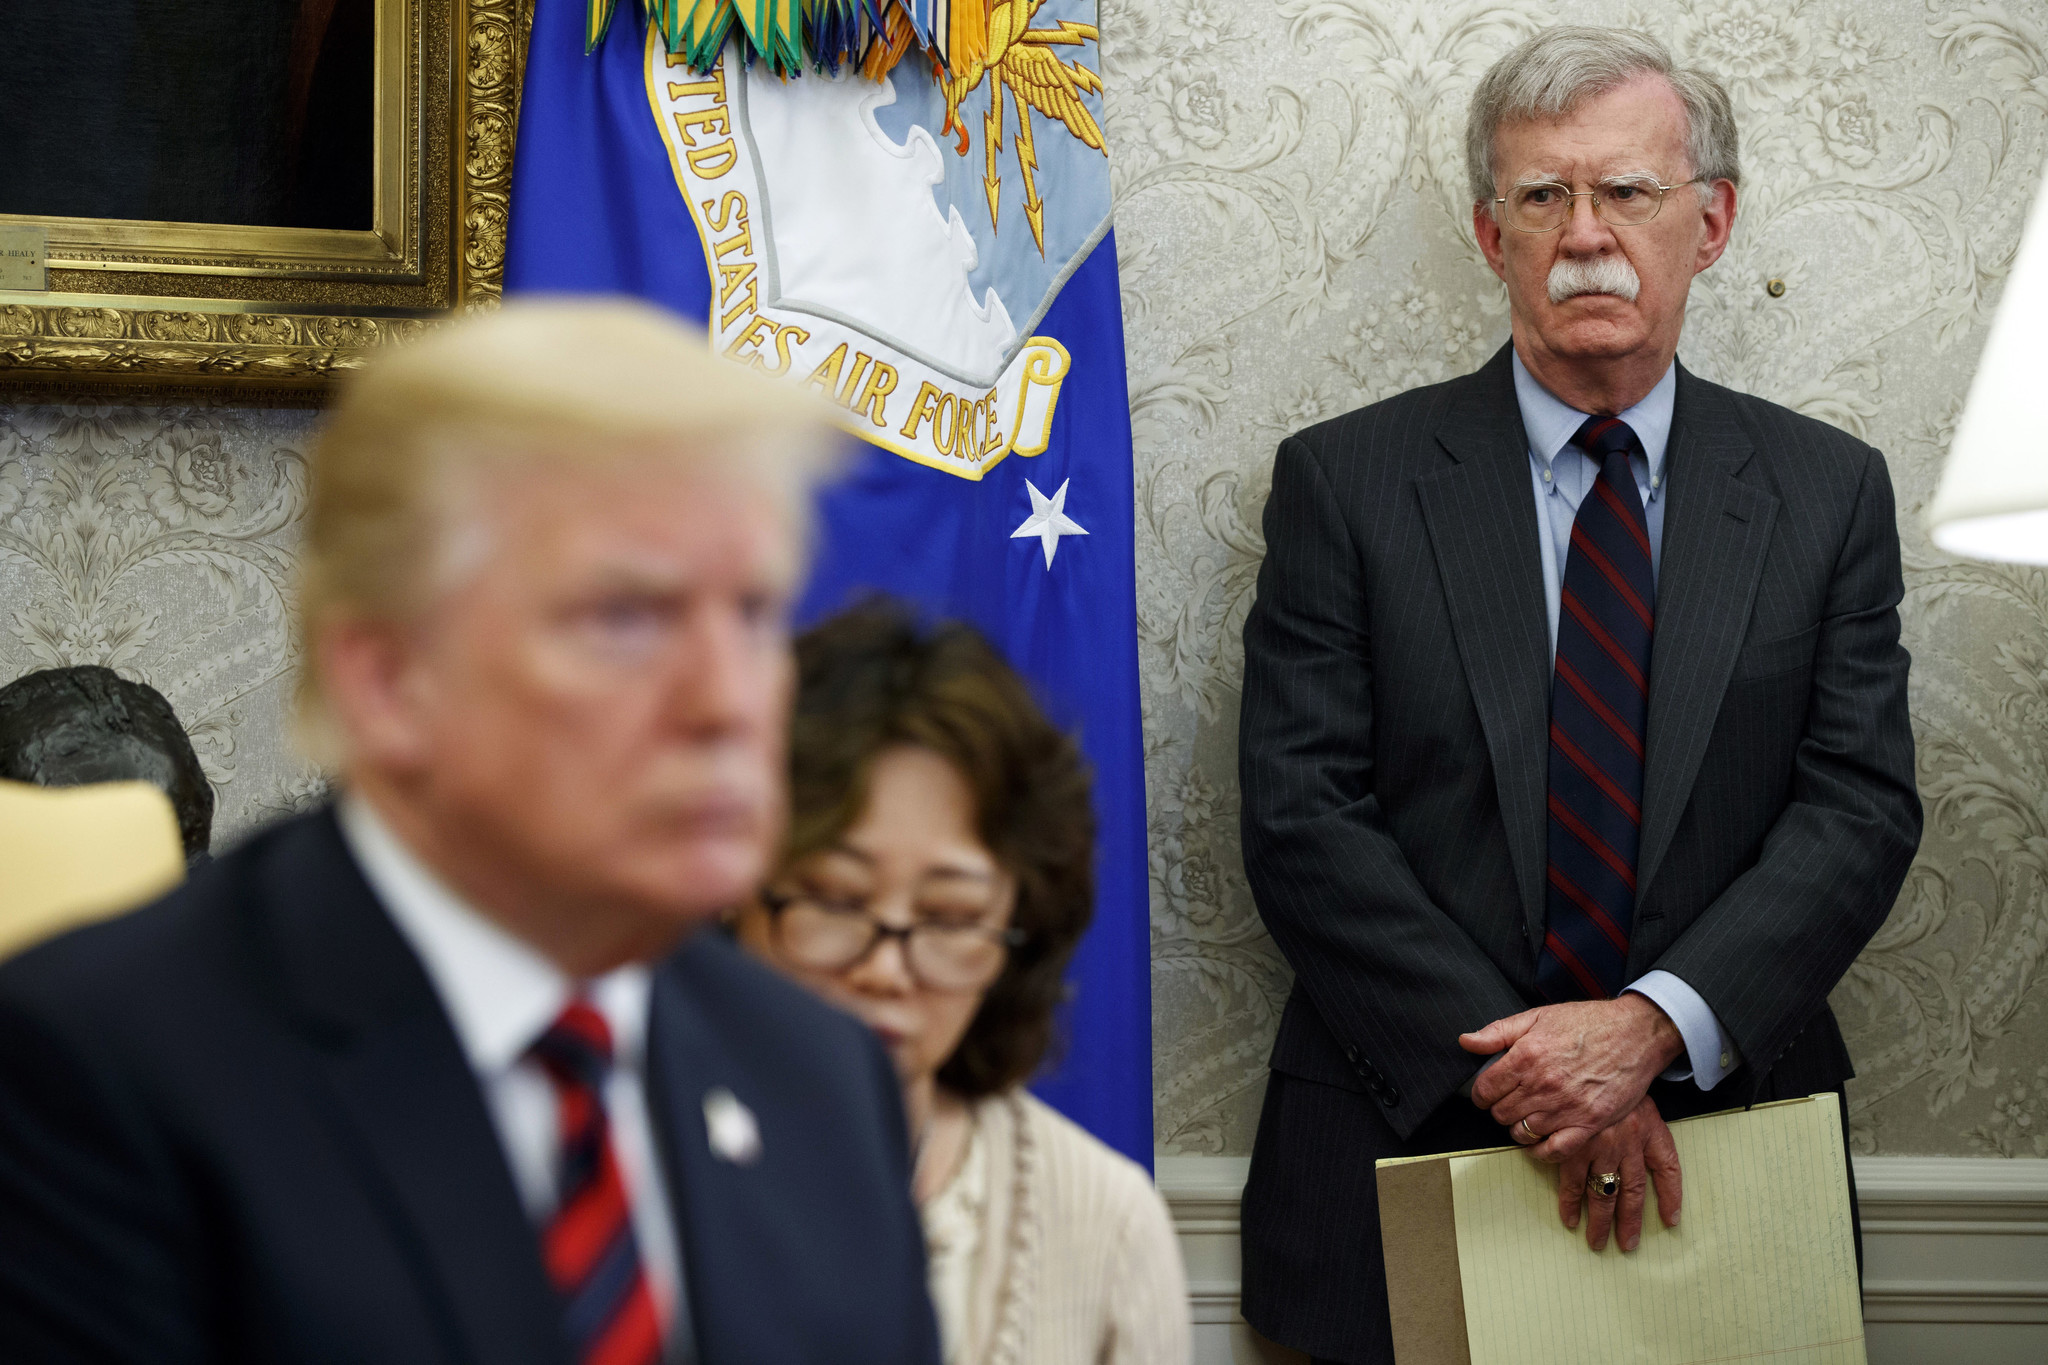 The Book of Bolton: Trump's former national security adviser's memoir makes him an essential witness in the impeachment trial